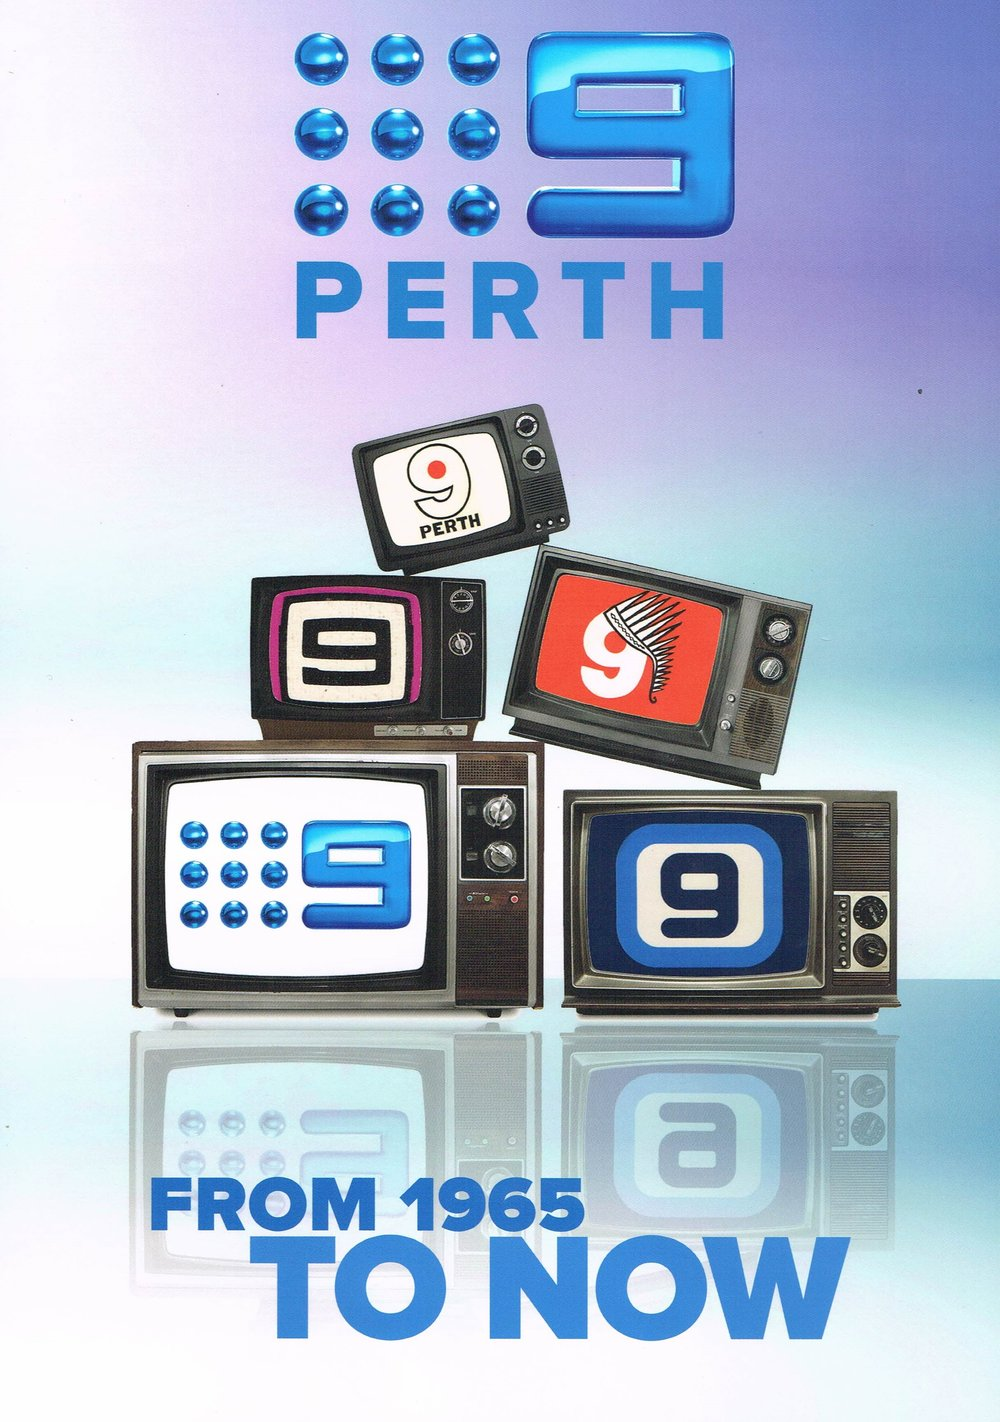 9 Perth from 1965 to now.jpg